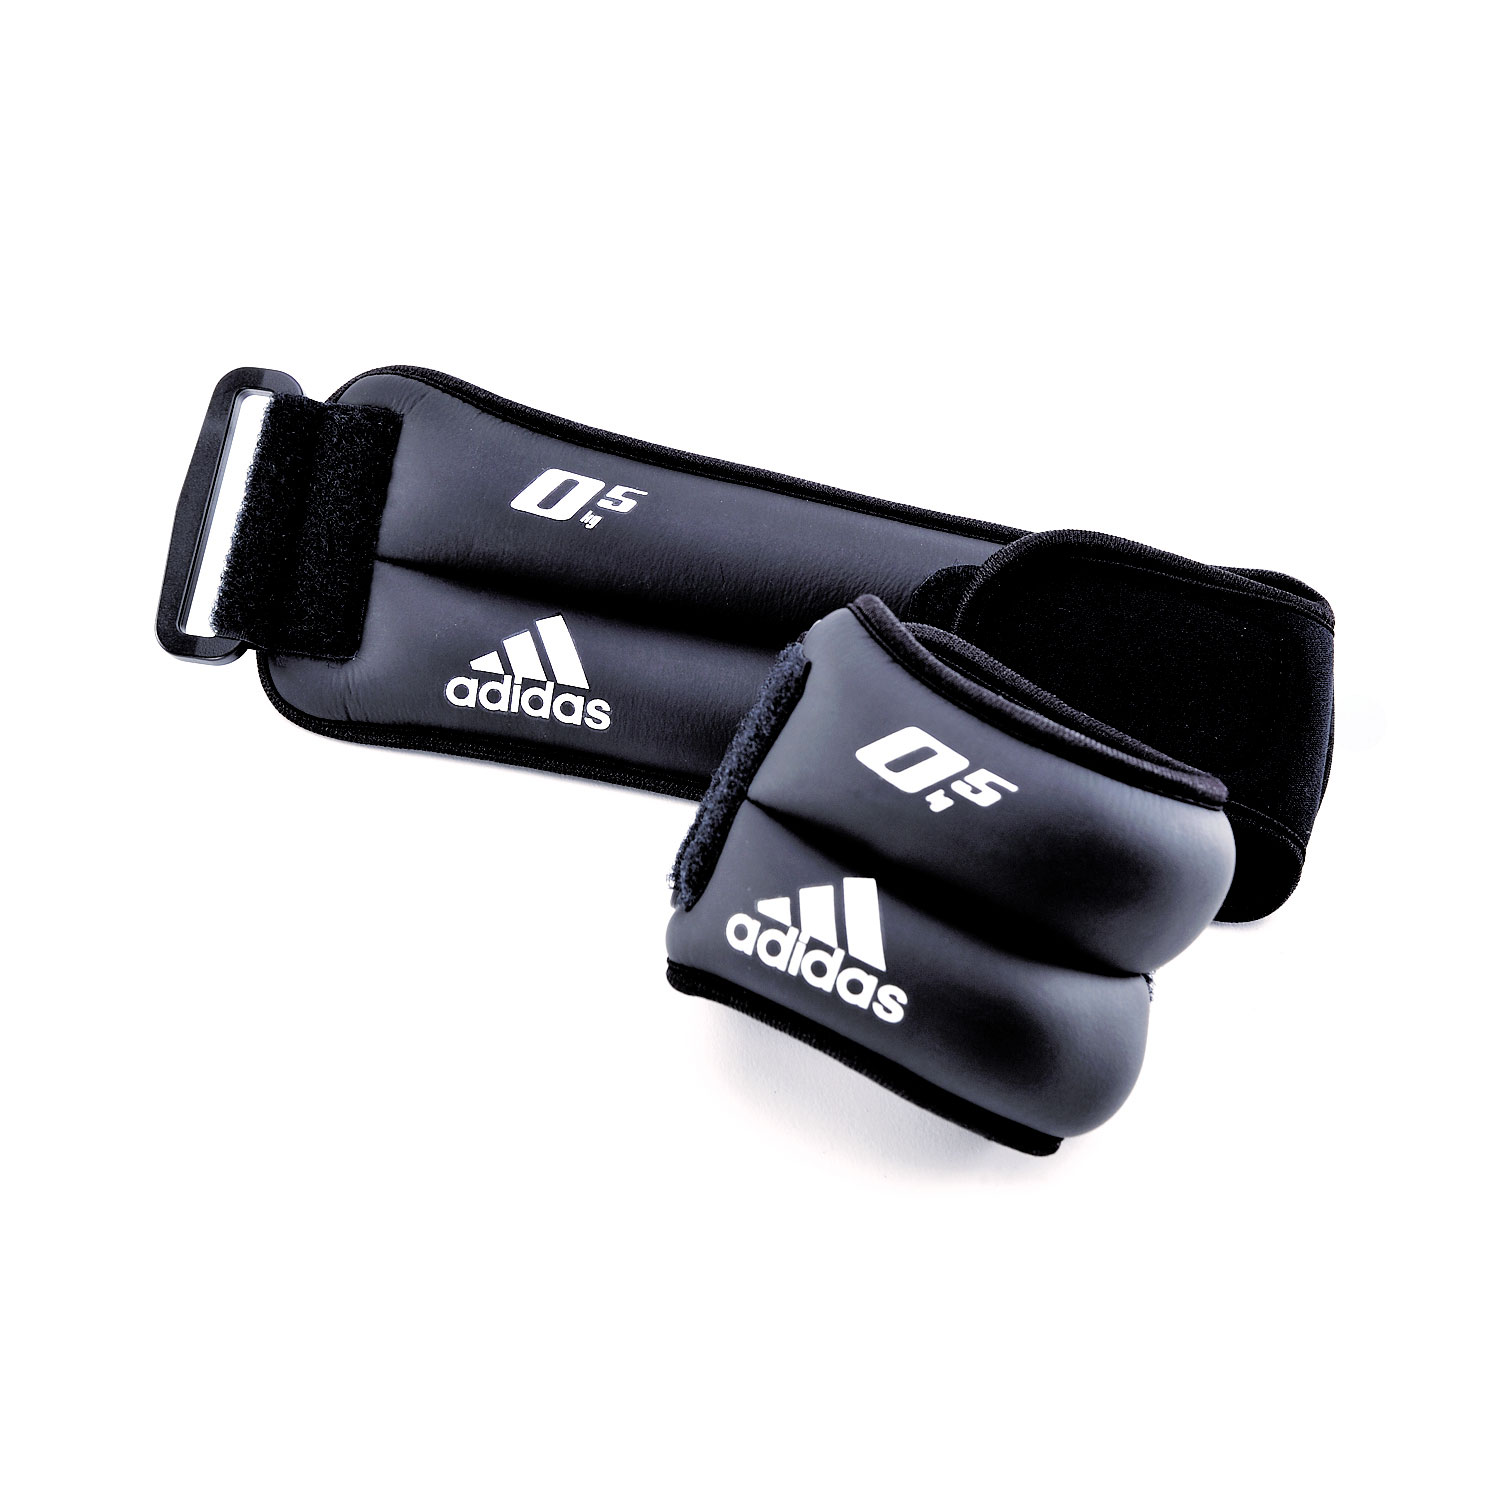 Adidas Ankle Wrist Weights 2 x 0.5kg